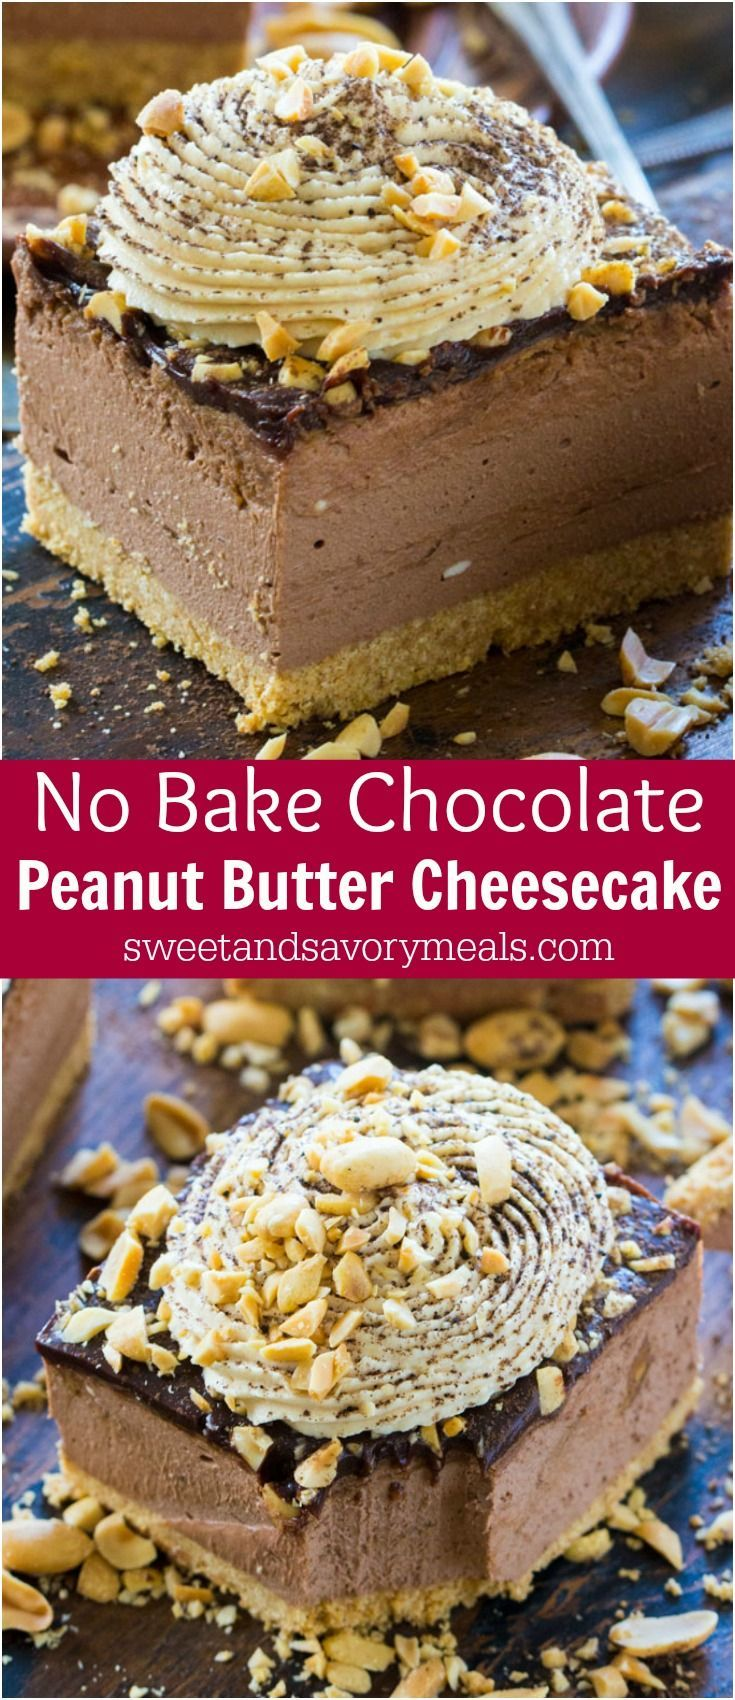 Chocolate Peanut Butter Cheesecake with no cracks or cooking time, because this delicious cheesecake is no bake with a perfect creamy texture.